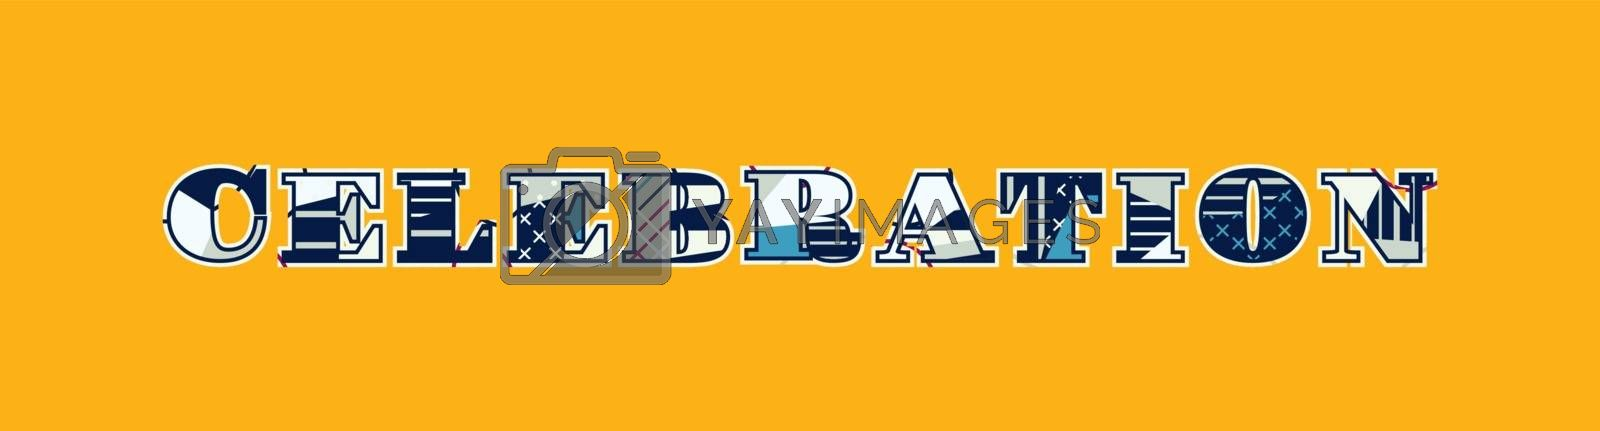 Celebration Concept Word Art Illustration by Enterline Design Services